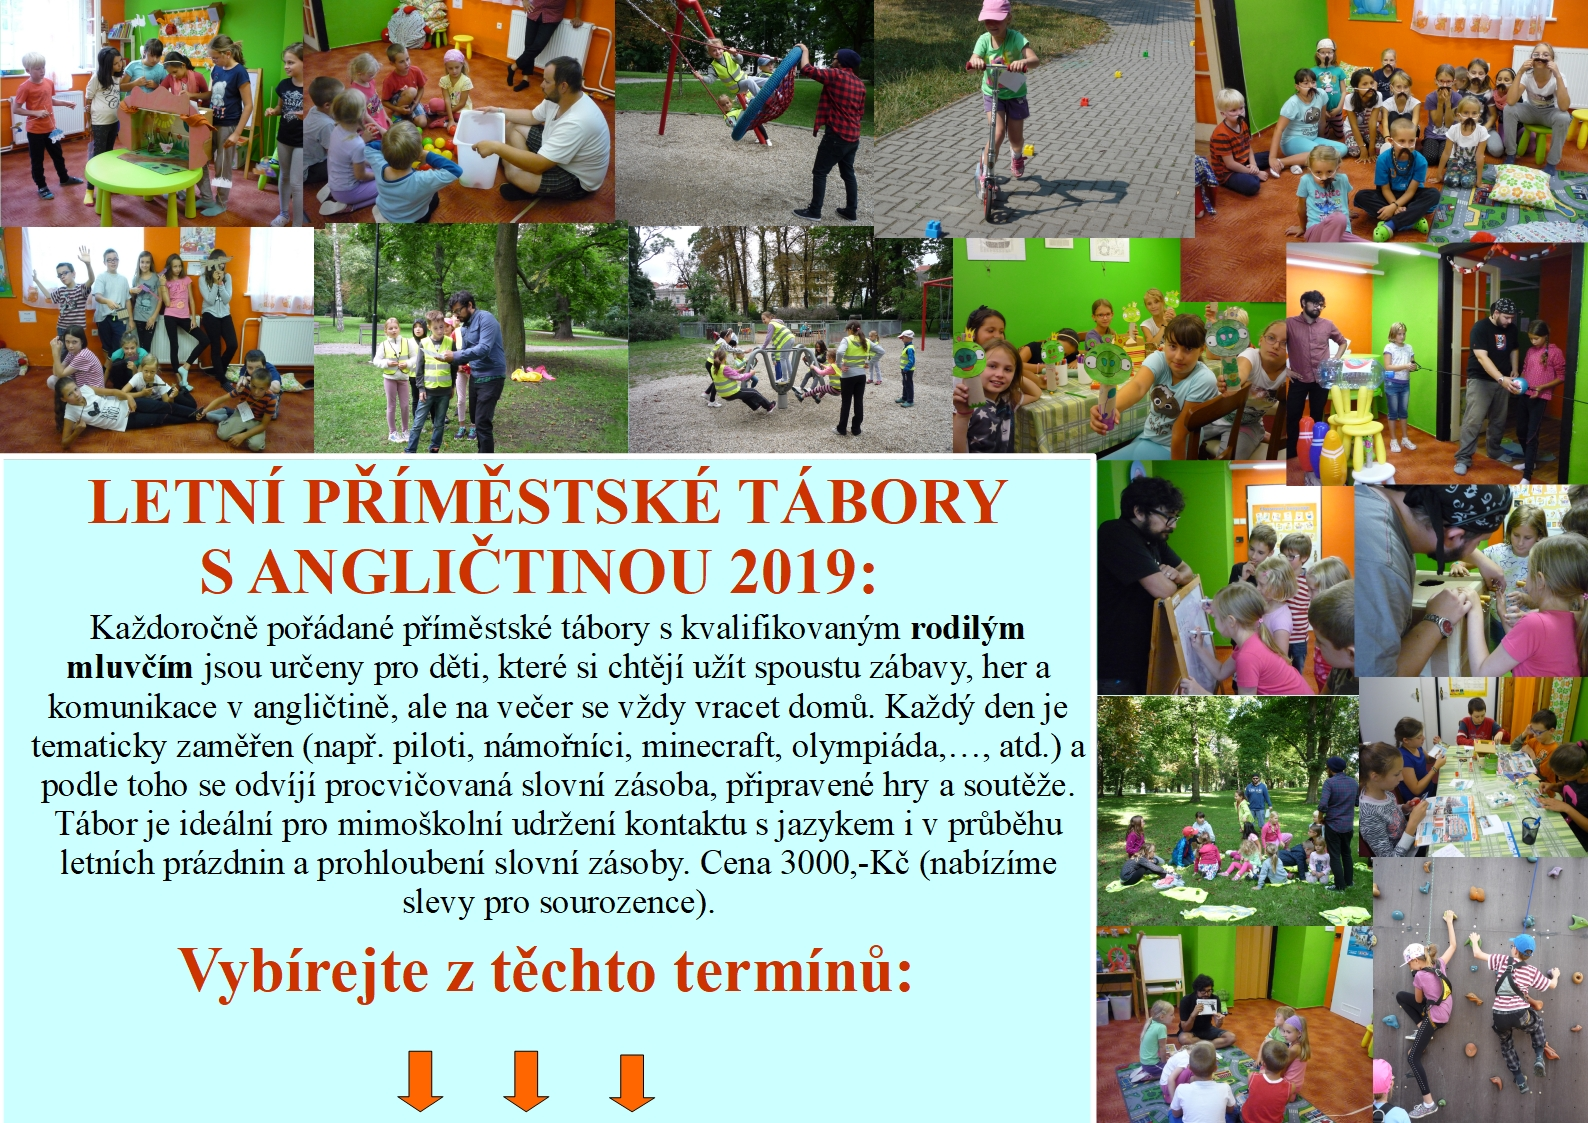 tábory web picture 2019